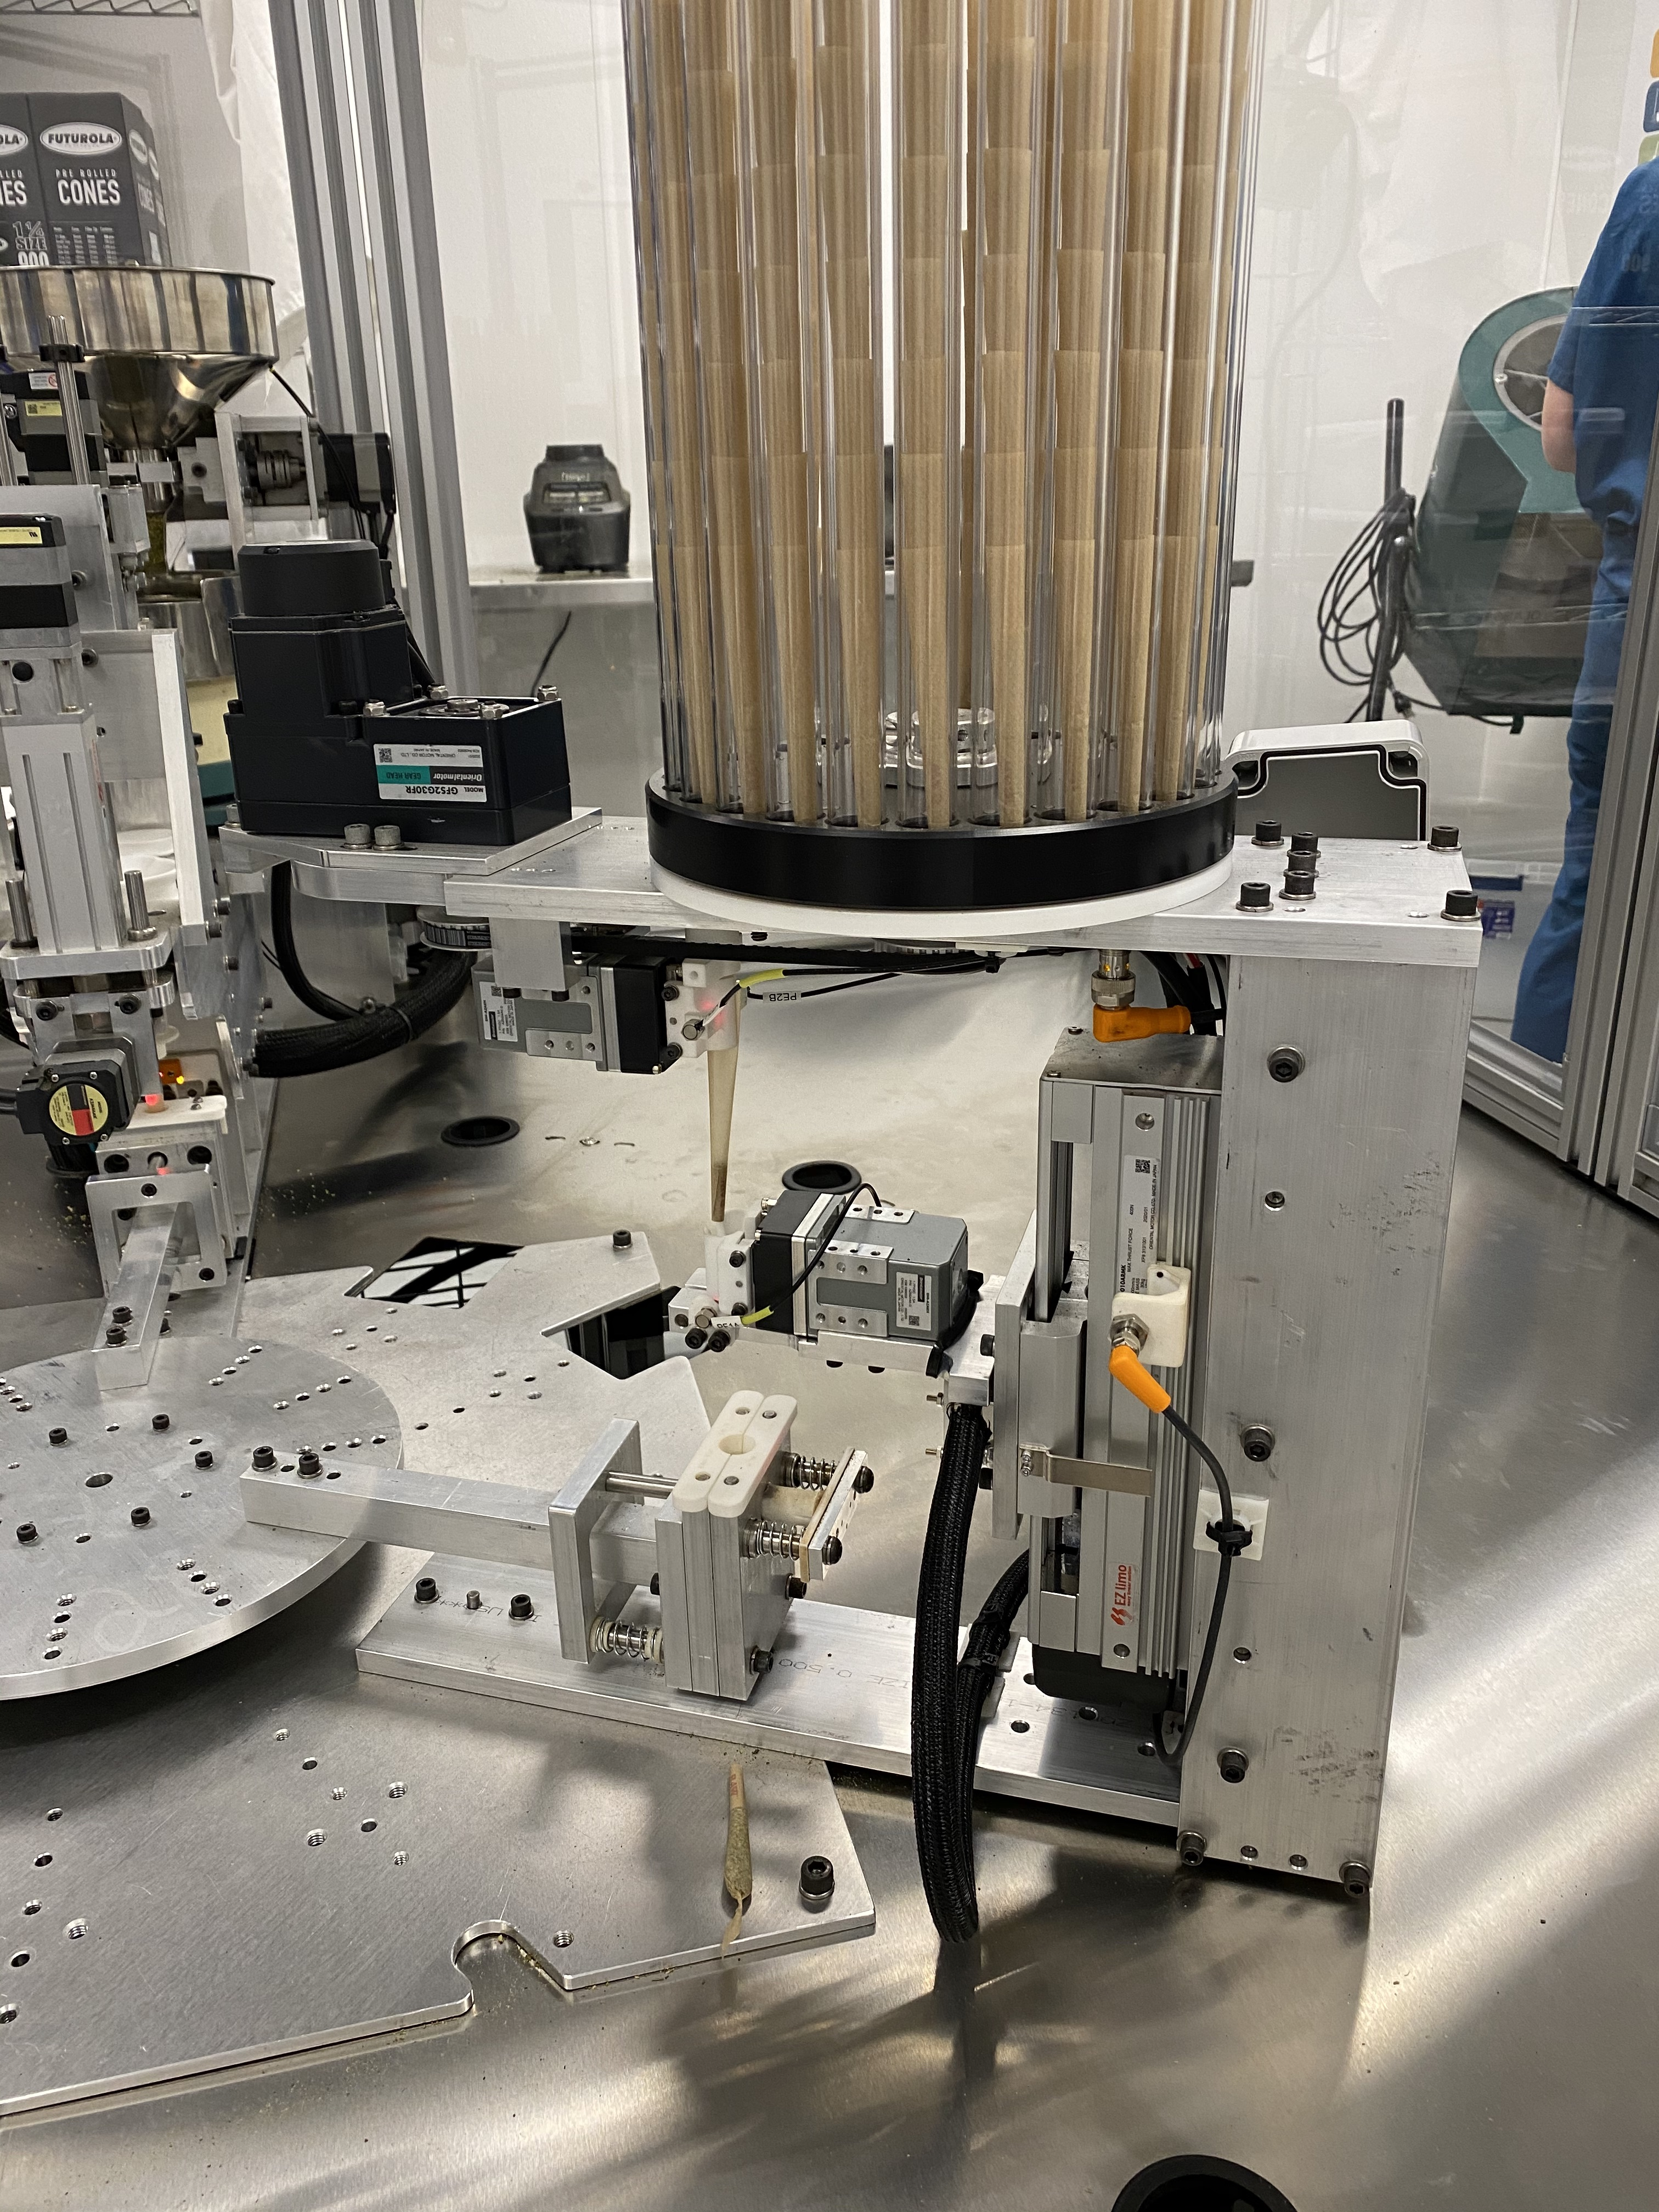 The pre-roll machine's cone magazine for loading cones of all sizes and brands.